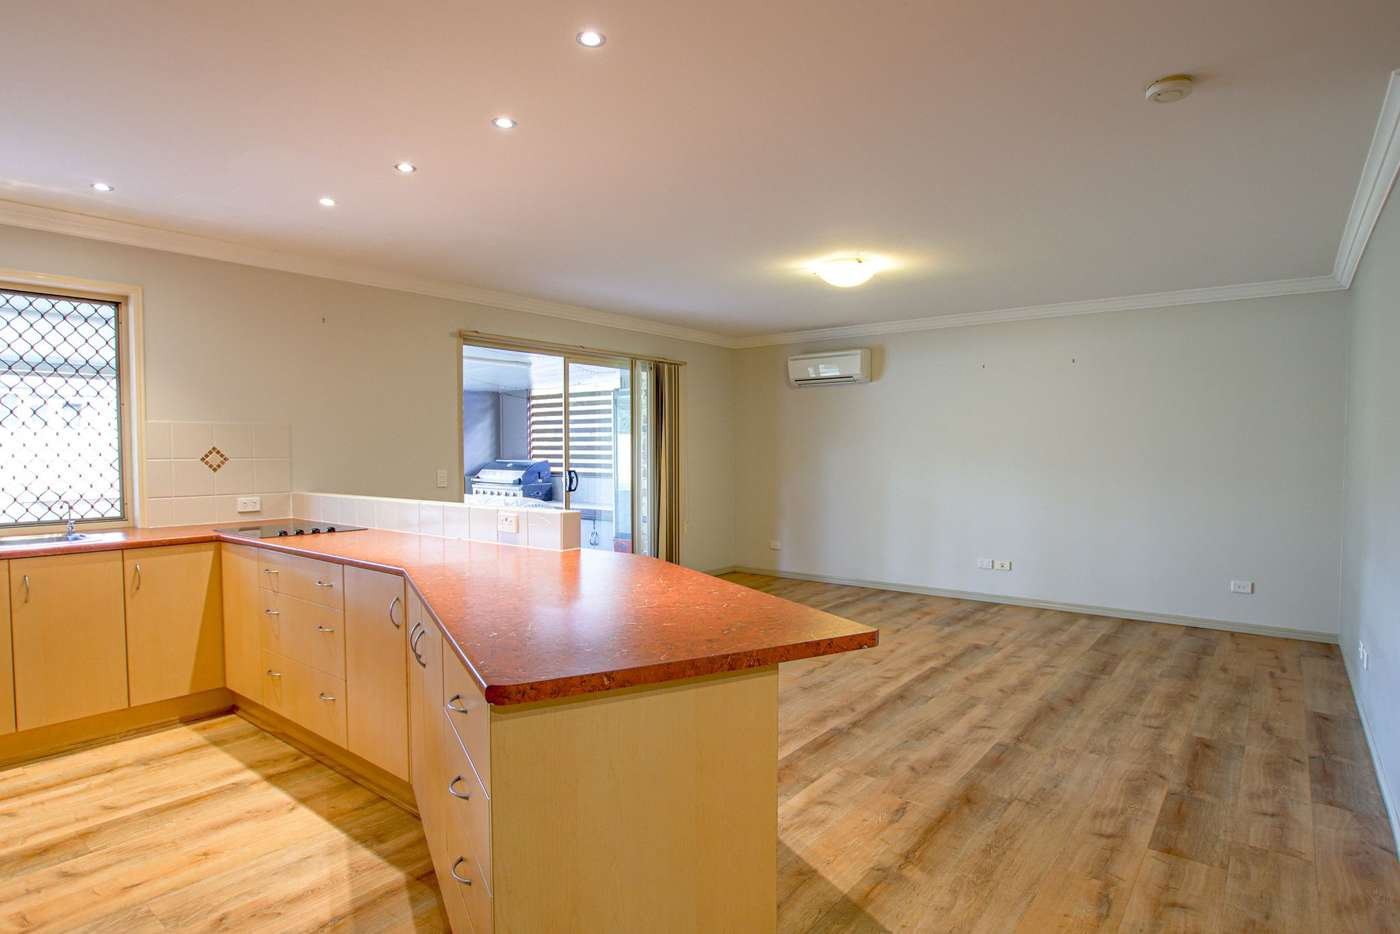 Seventh view of Homely house listing, 81 Balmoral Street, Kuraby QLD 4112